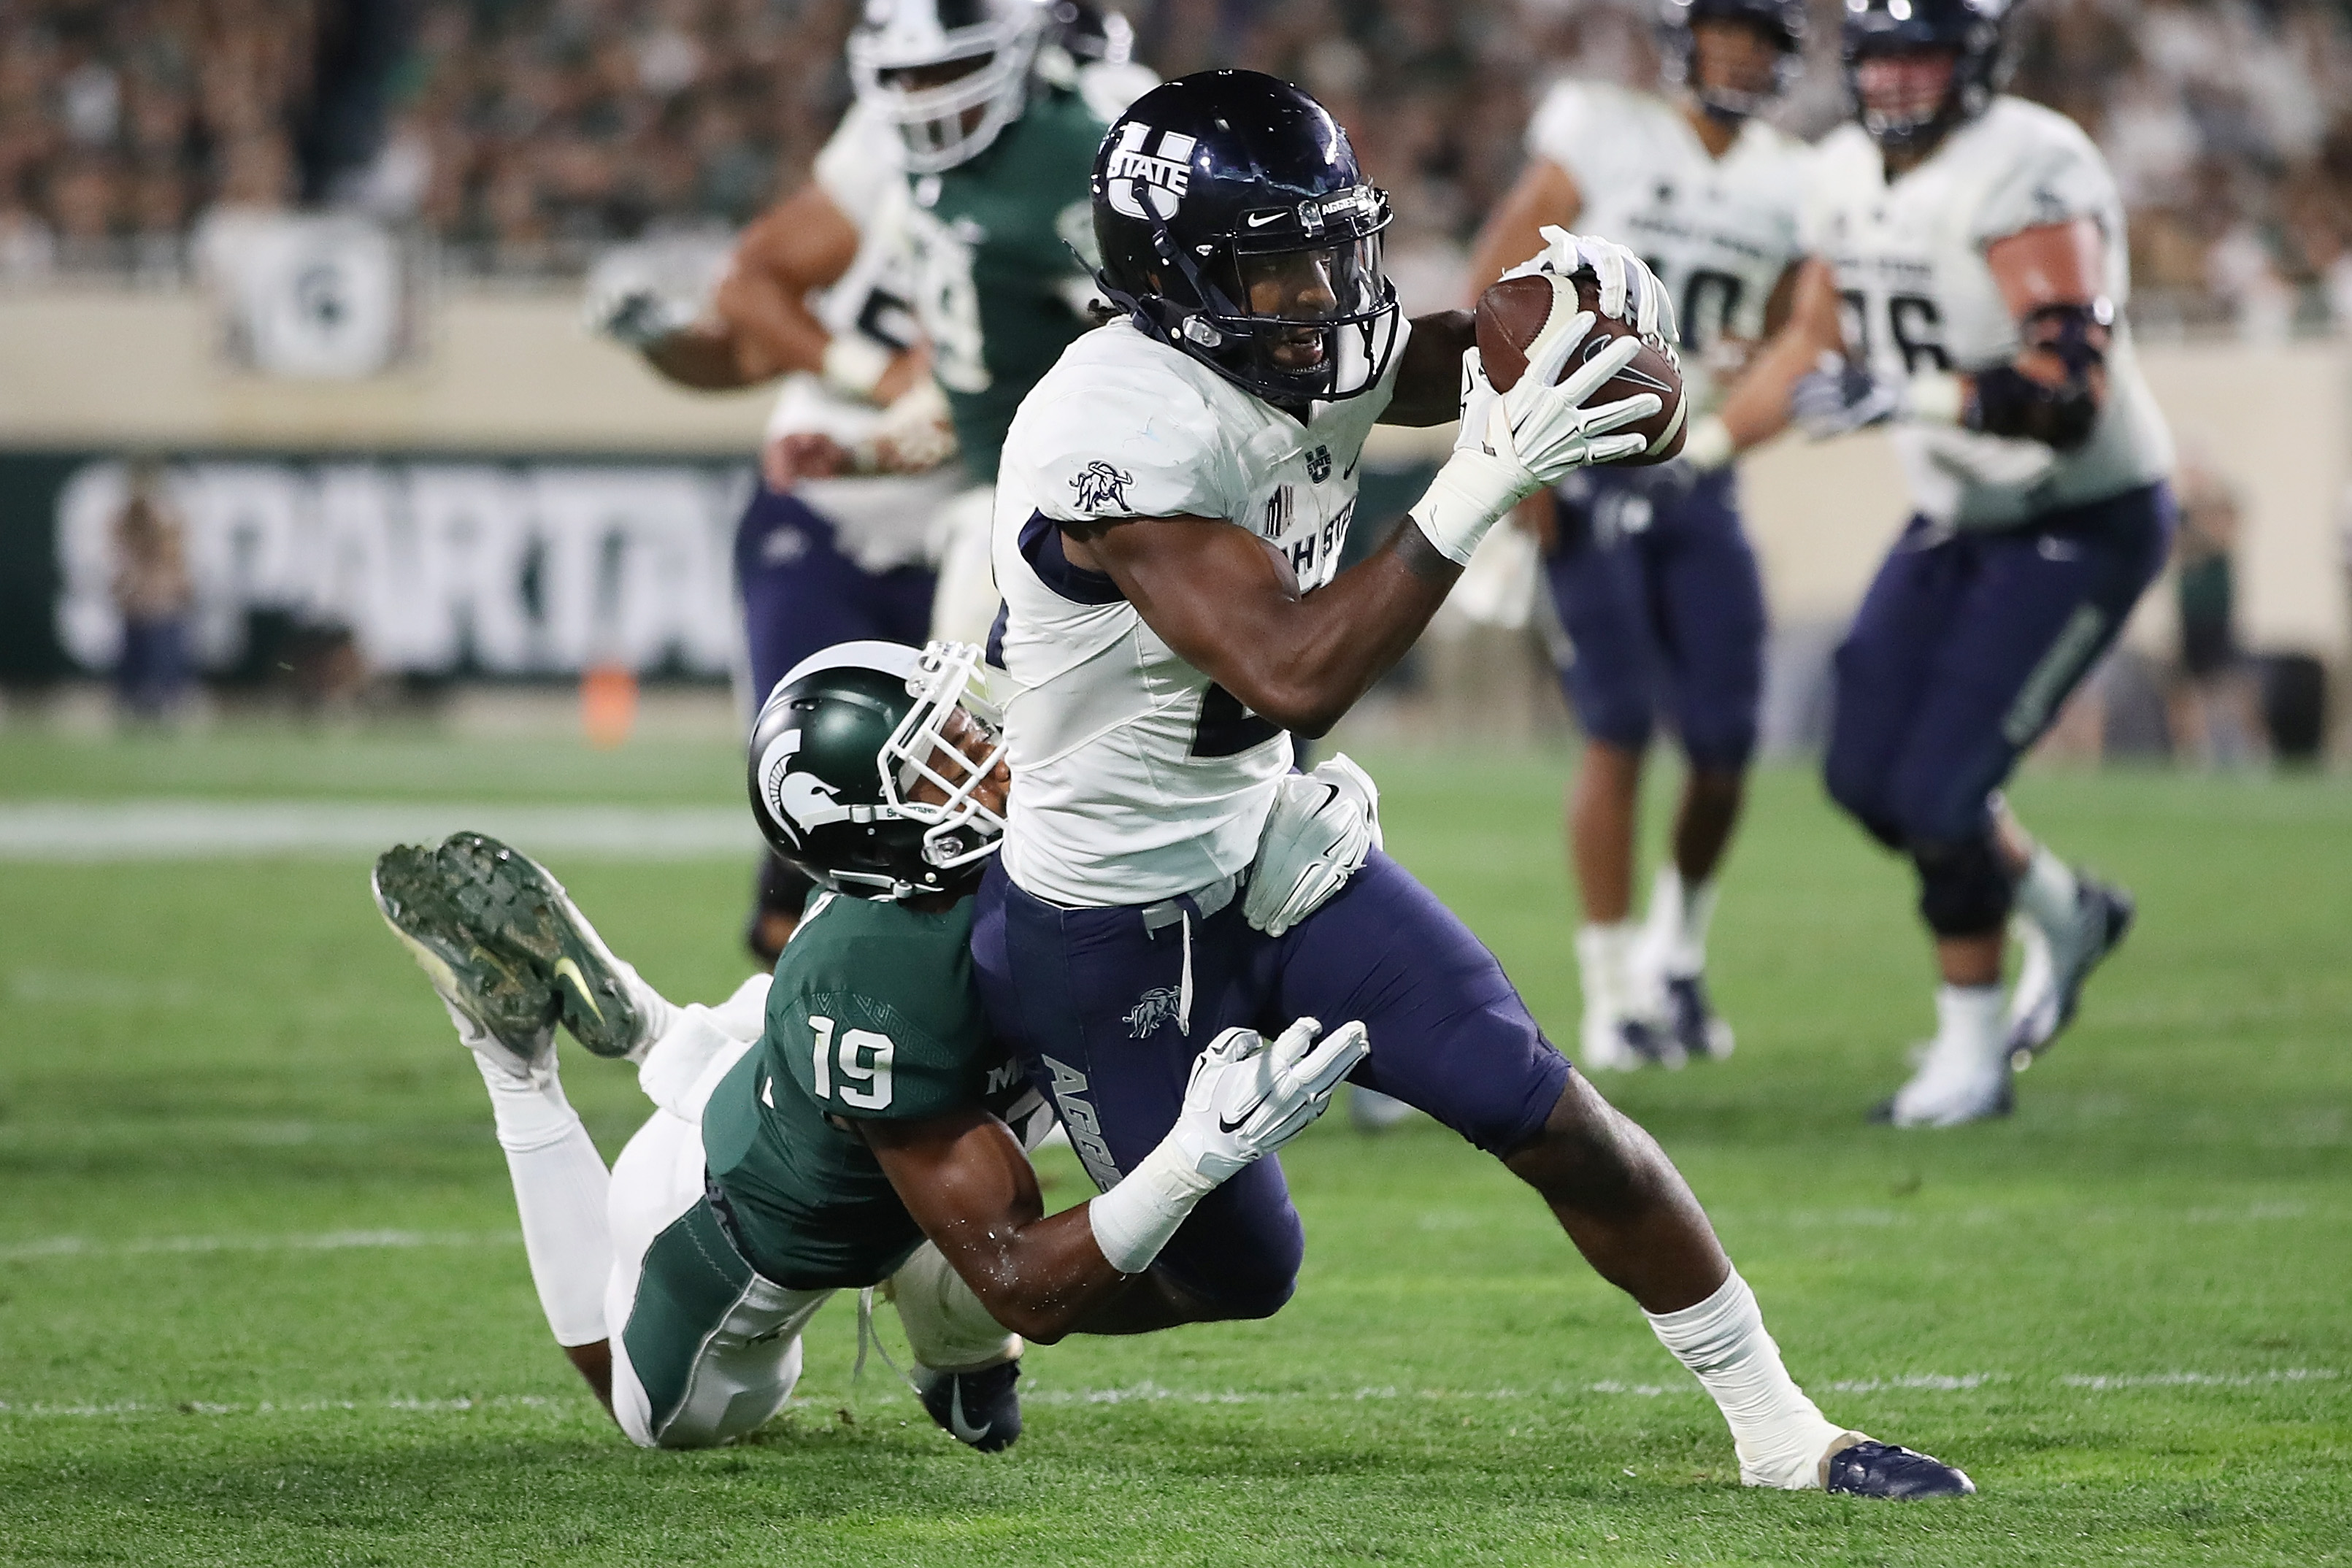 Utah State Aggies WR Jalen Greene tries to escape a tackle from Michigan State Spartans CB Josh Butler, Aug. 31, 2018.